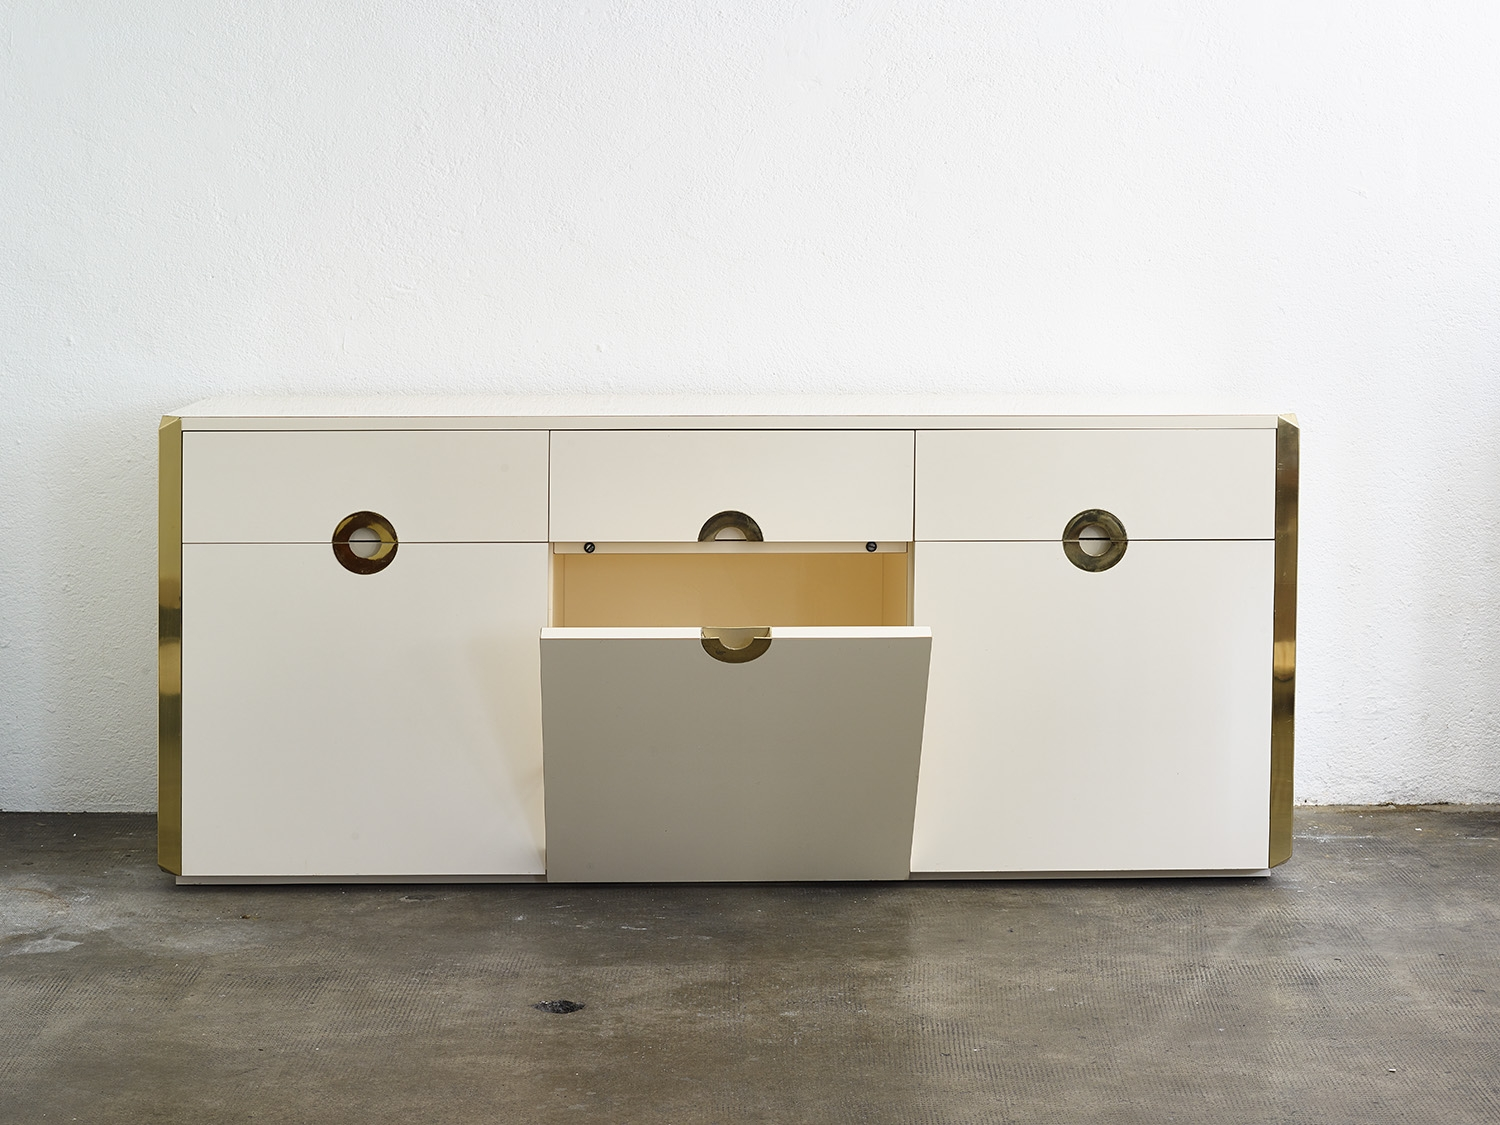 sideboard-alveo-de-willy-rizzo-ed-mario-sabot-1970-image-06